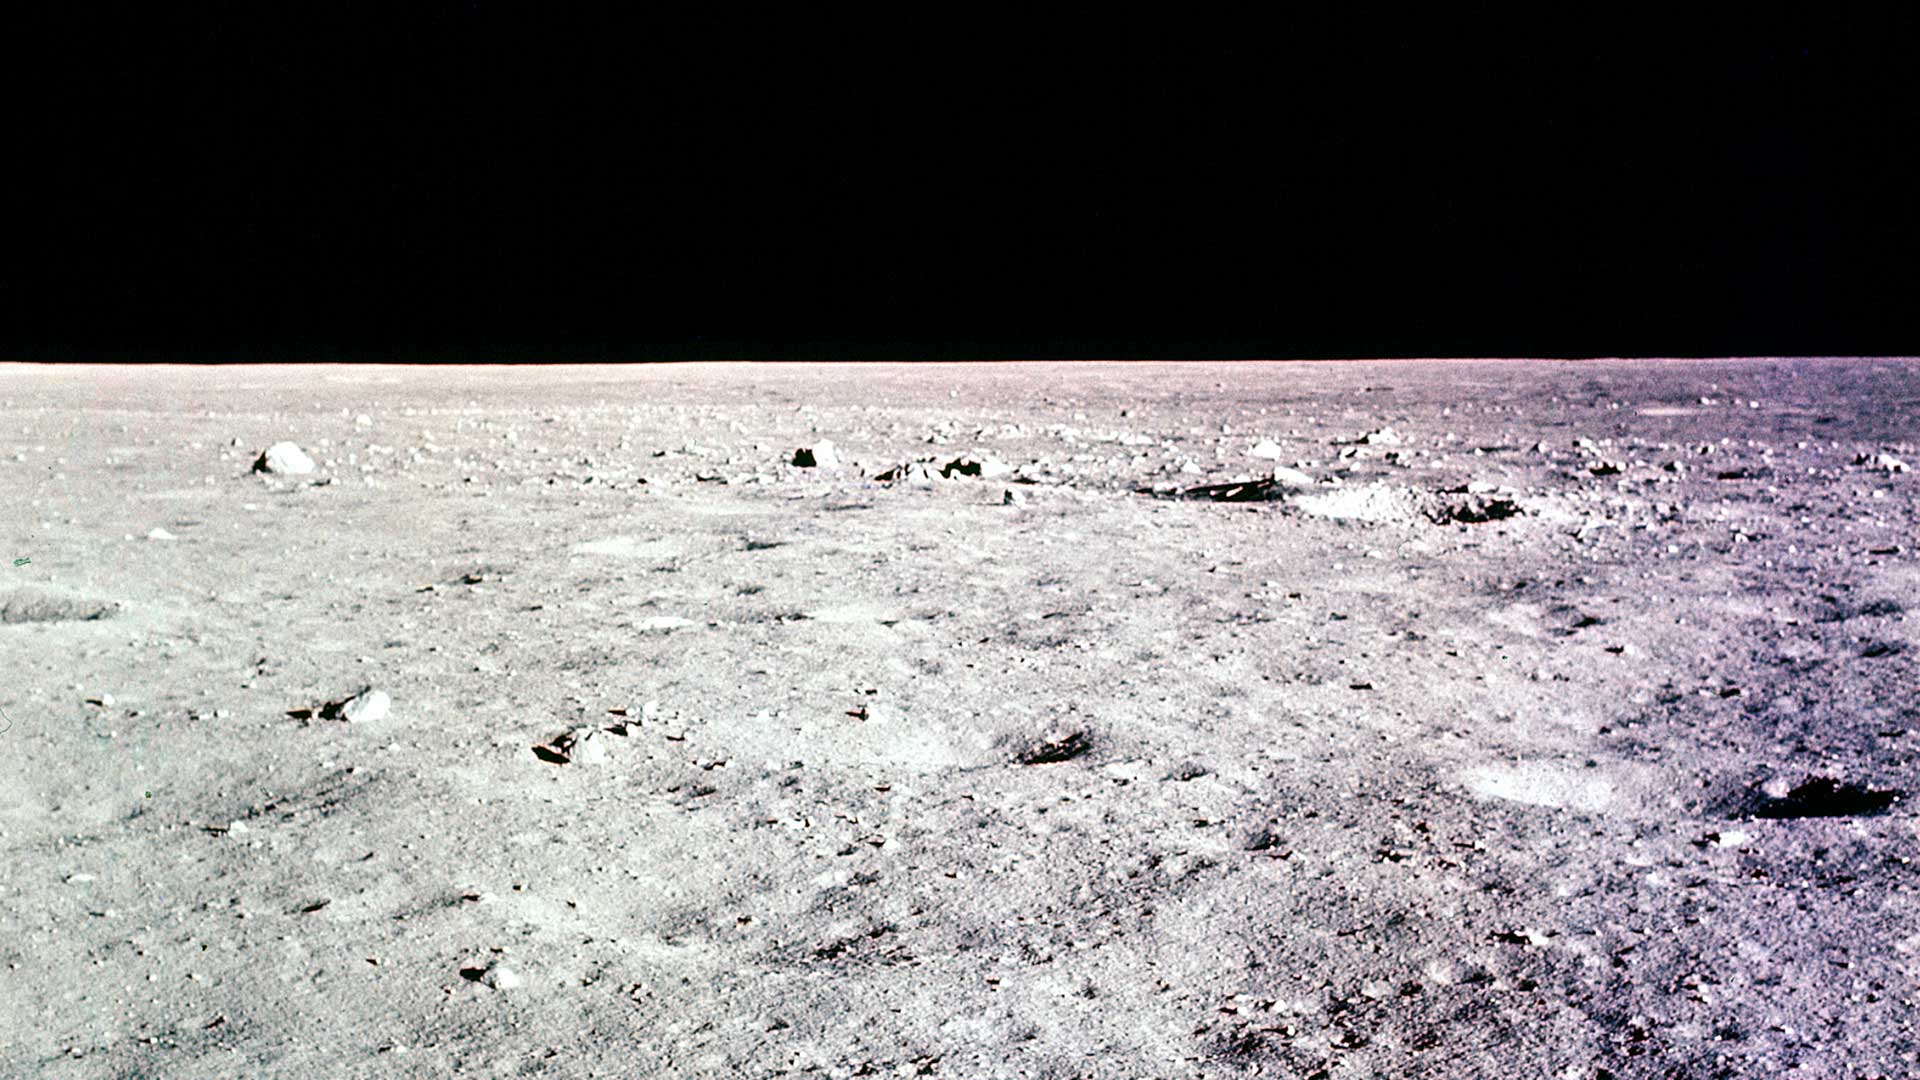 Photo taken shortly before Apollo 11 landed on the moon's surface, July 20, 1969.